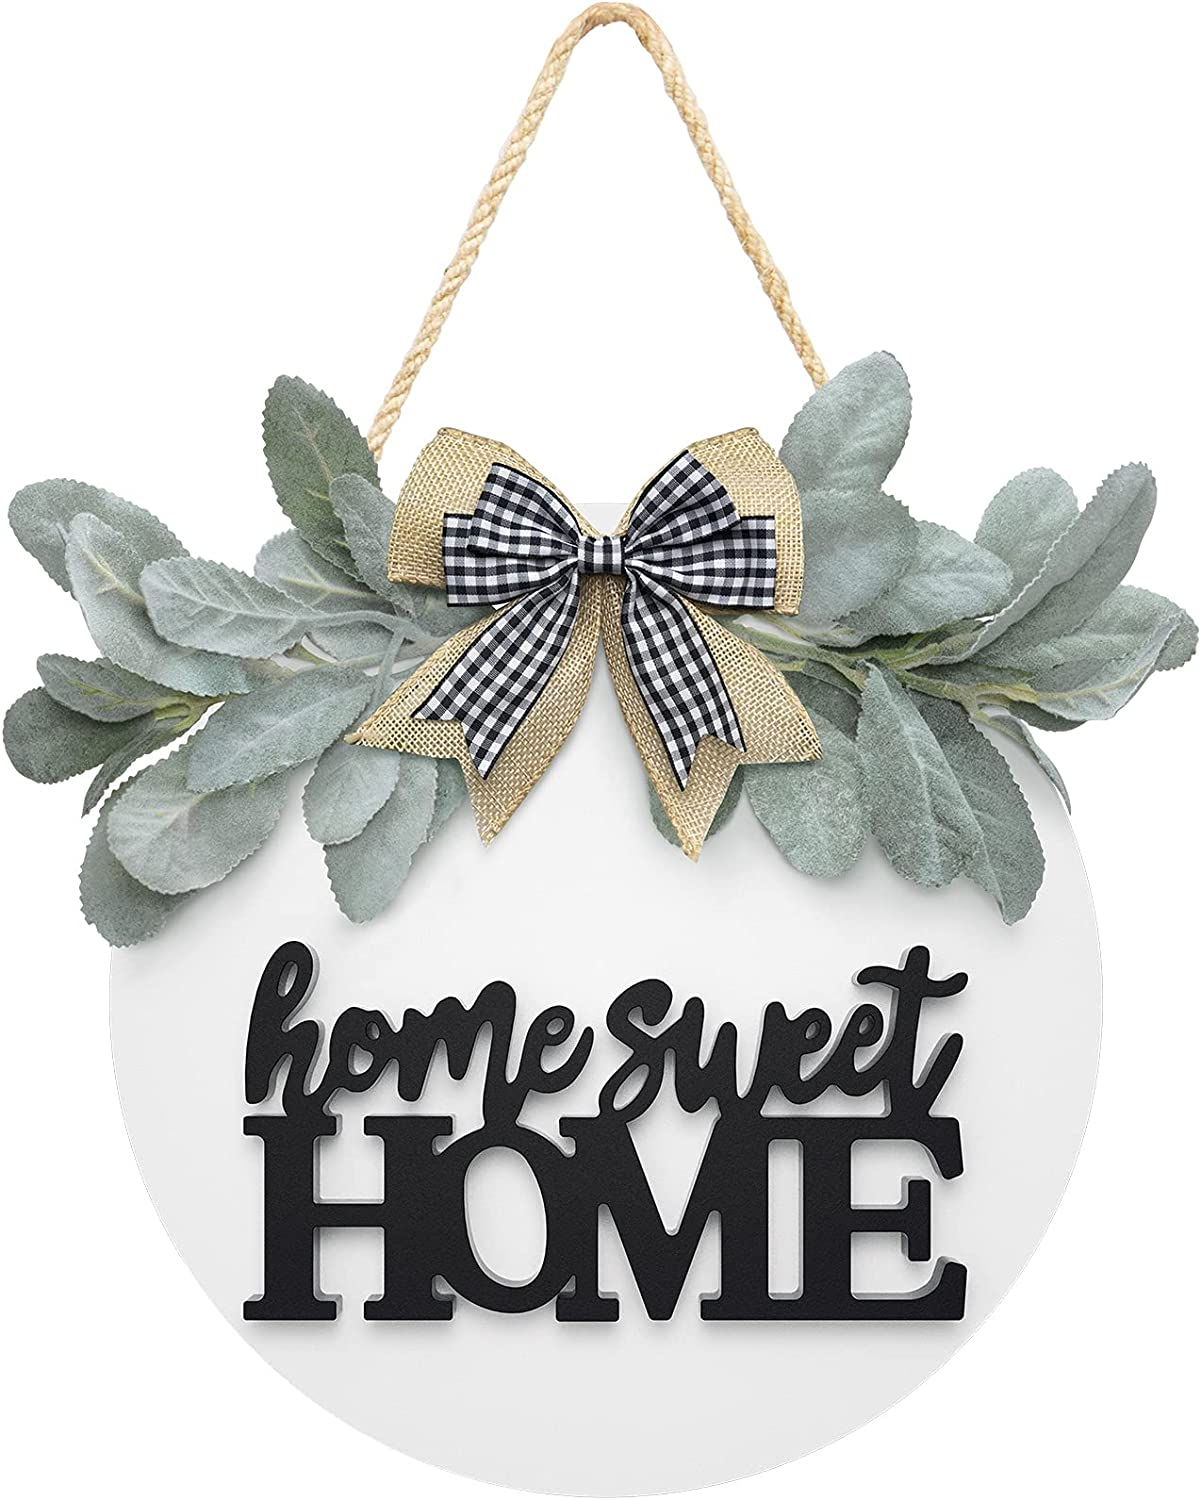 Welcome Home Sweet Home Sign for Front Porch Door Décor Farmhouse Wreath Sign with Premium Greenery and Bow- Wooden Door Sign for Wreath Door Hanger, Housewarming for Home Décor